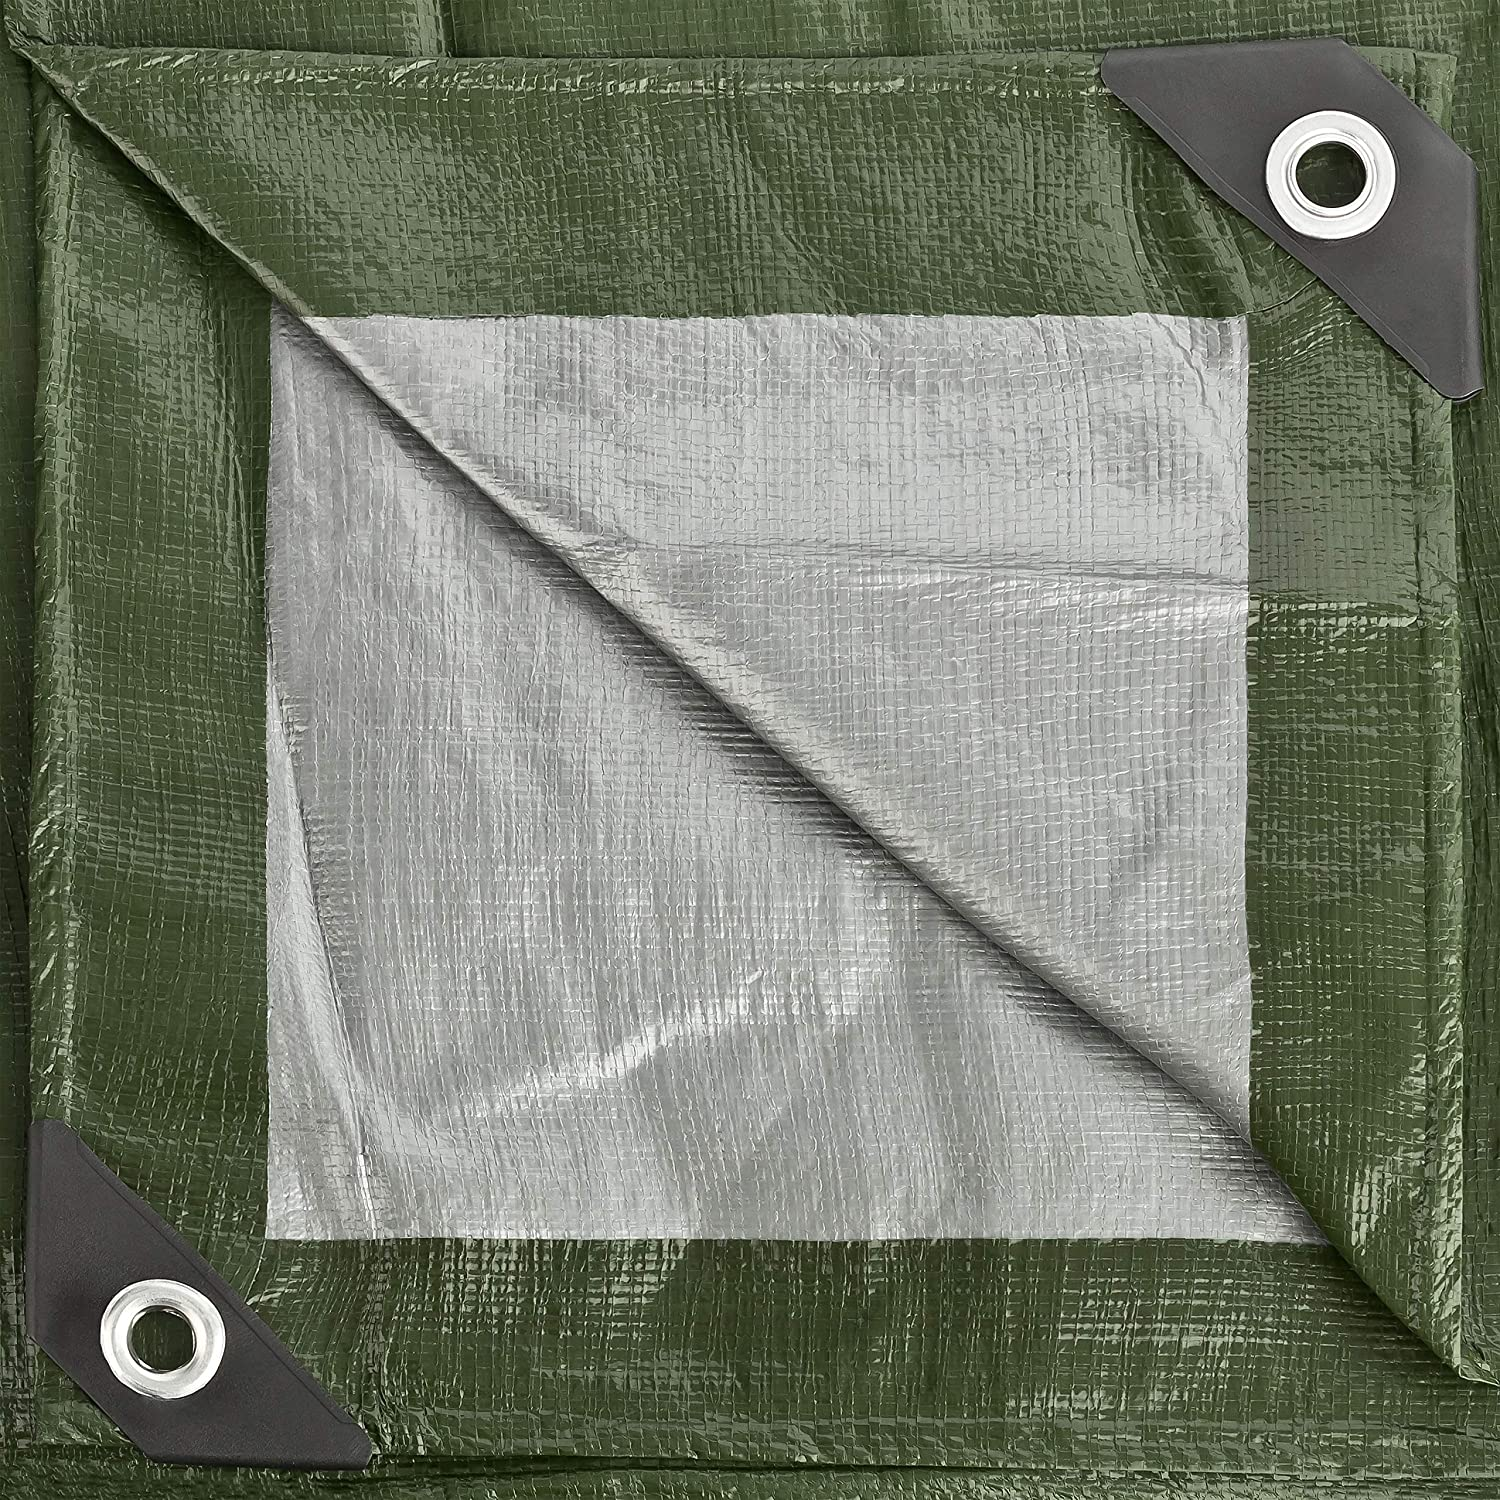 GardenMate 2m x 3m Tarpaulin Waterproof Heavy Duty - Home & Garde Green/Silver Tarp Sheet - Premium Quality Cover Made of 140gramm/Square metre Tarpaulin